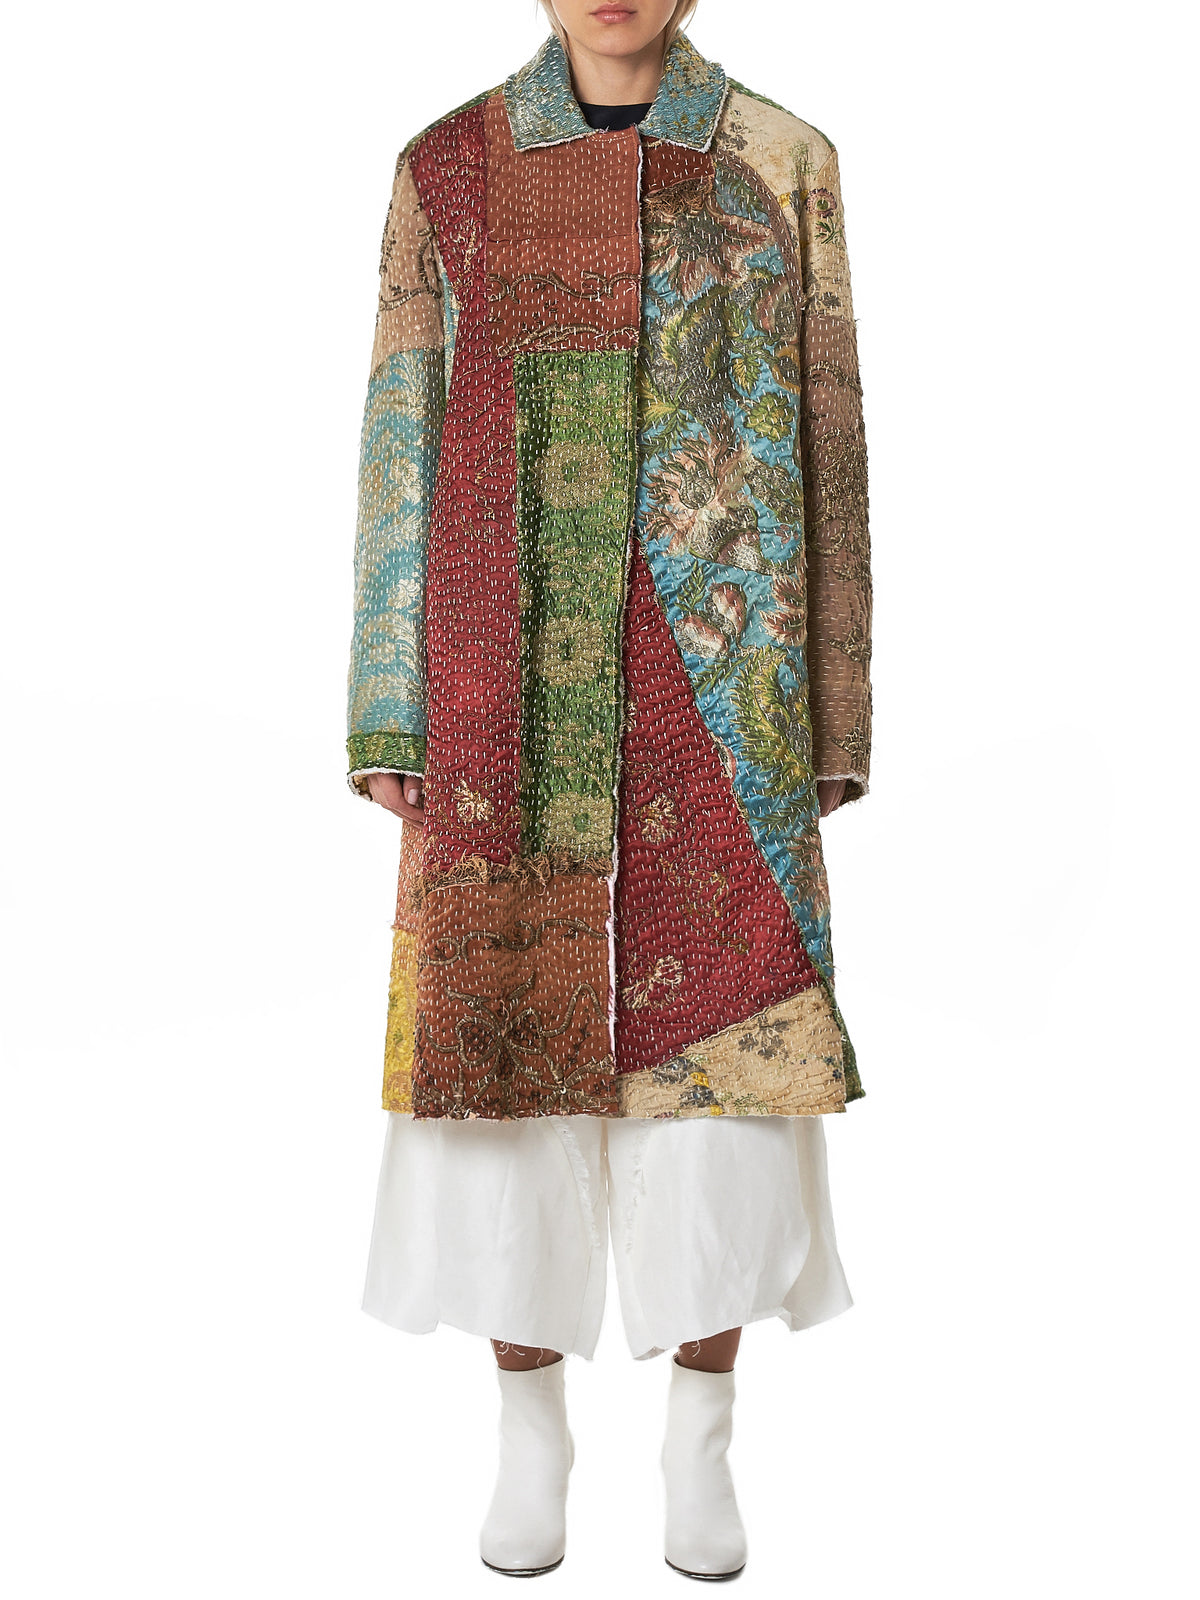 By Walid Embroidered Coat - Hlorenzo Front